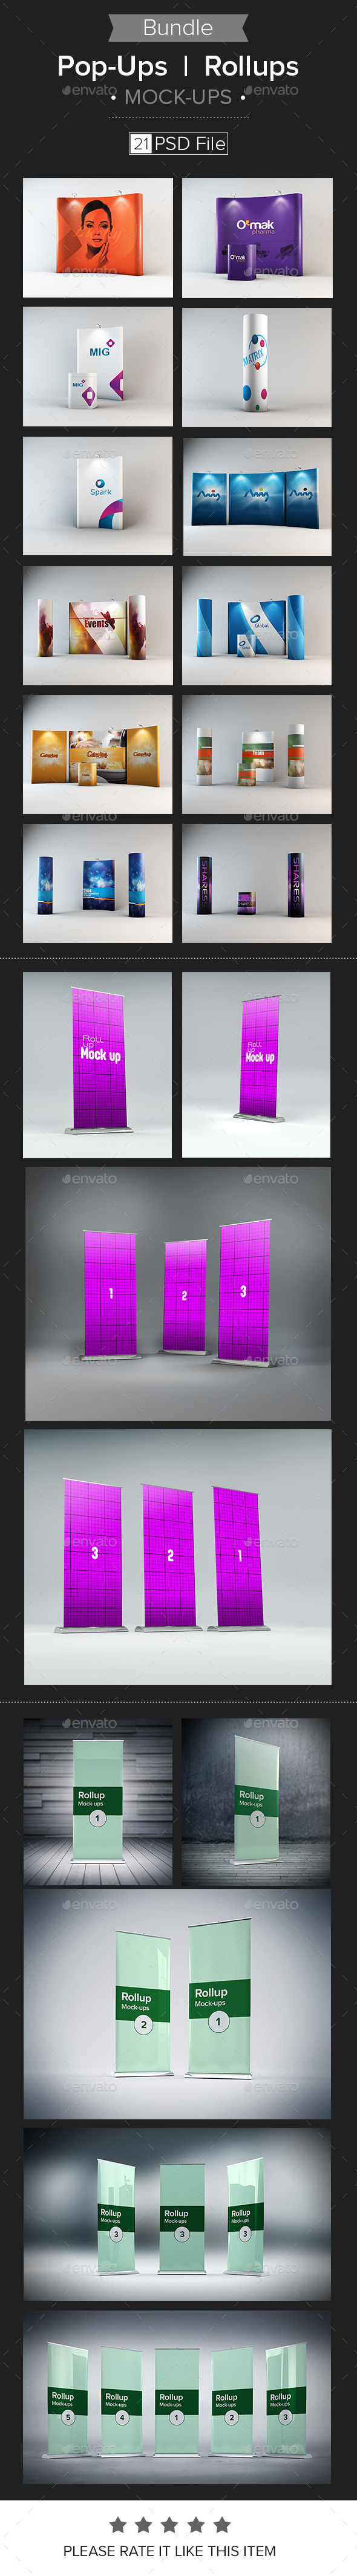 GraphicRiver Pop-Ups Rollups Mock-up Bundle 9817443